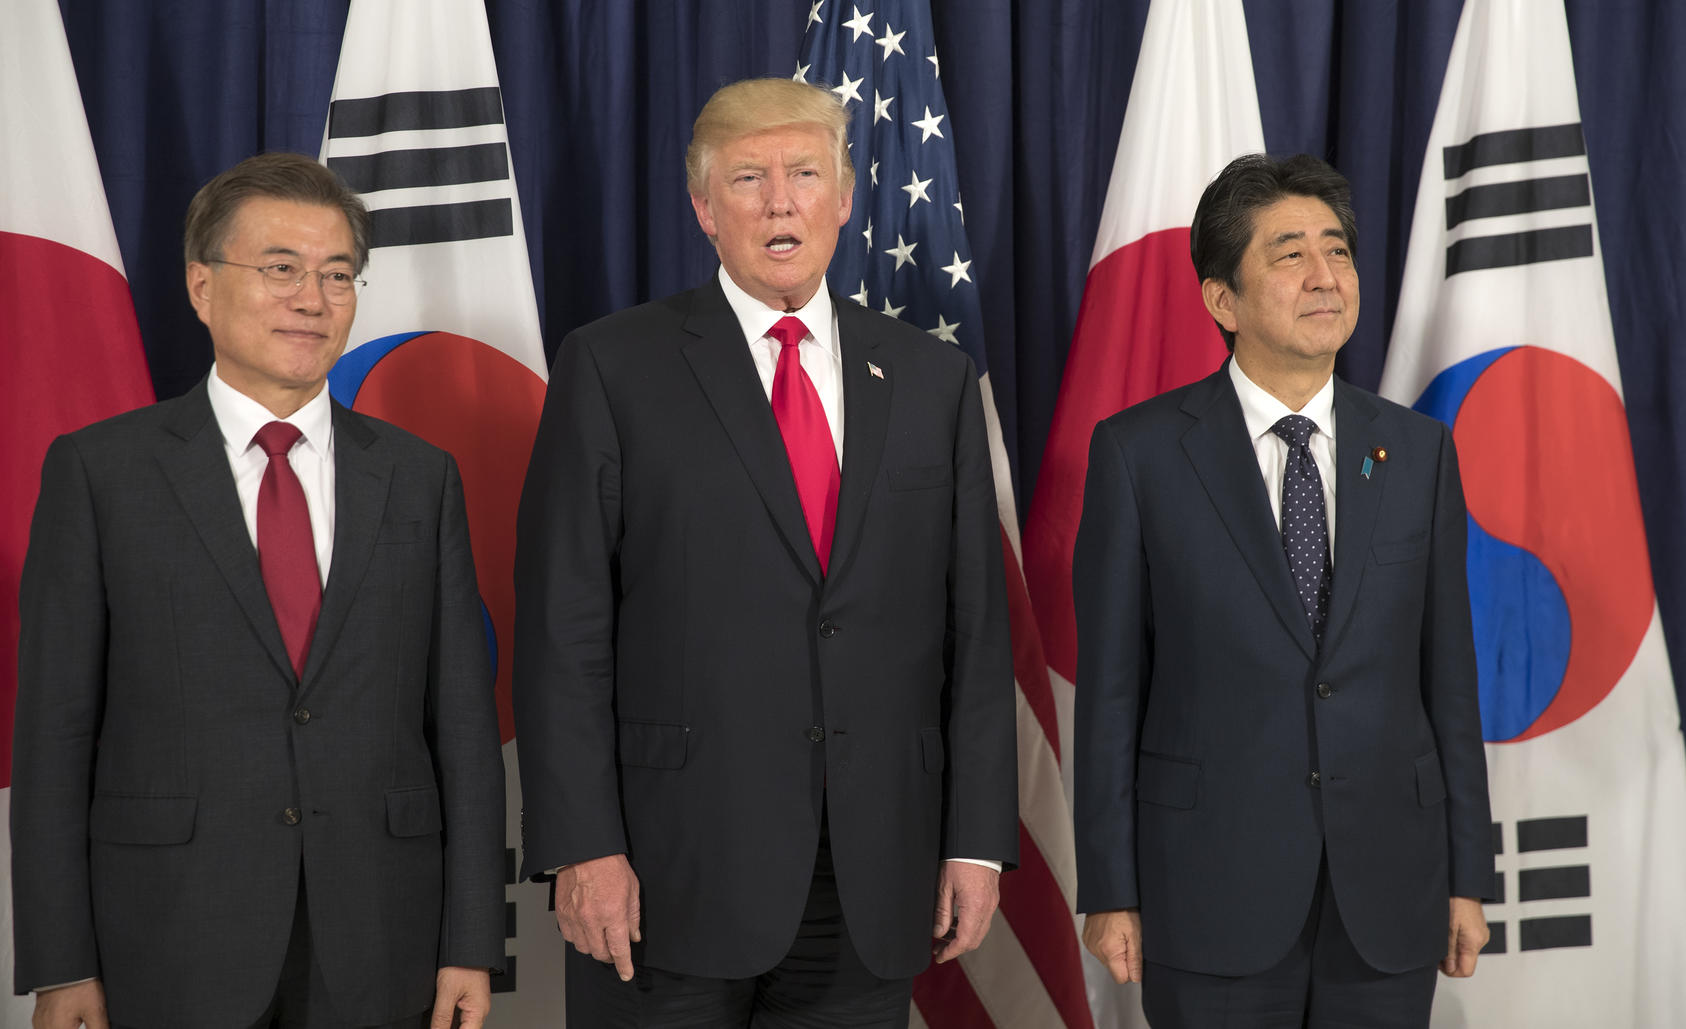 President Donald Trump with President Moon Jae-in of South Korea, left, and Prime Minister Shinzo Abe of Japan, during the G20 summit in Hamburg, Germany, July 6, 2017. As the three allies prepared to meet on the sidelines of the United Nations General Assembly in September, Moon' softer stance towards North Korea has made him the odd man out. (Stephen Crowley/The New York Times)